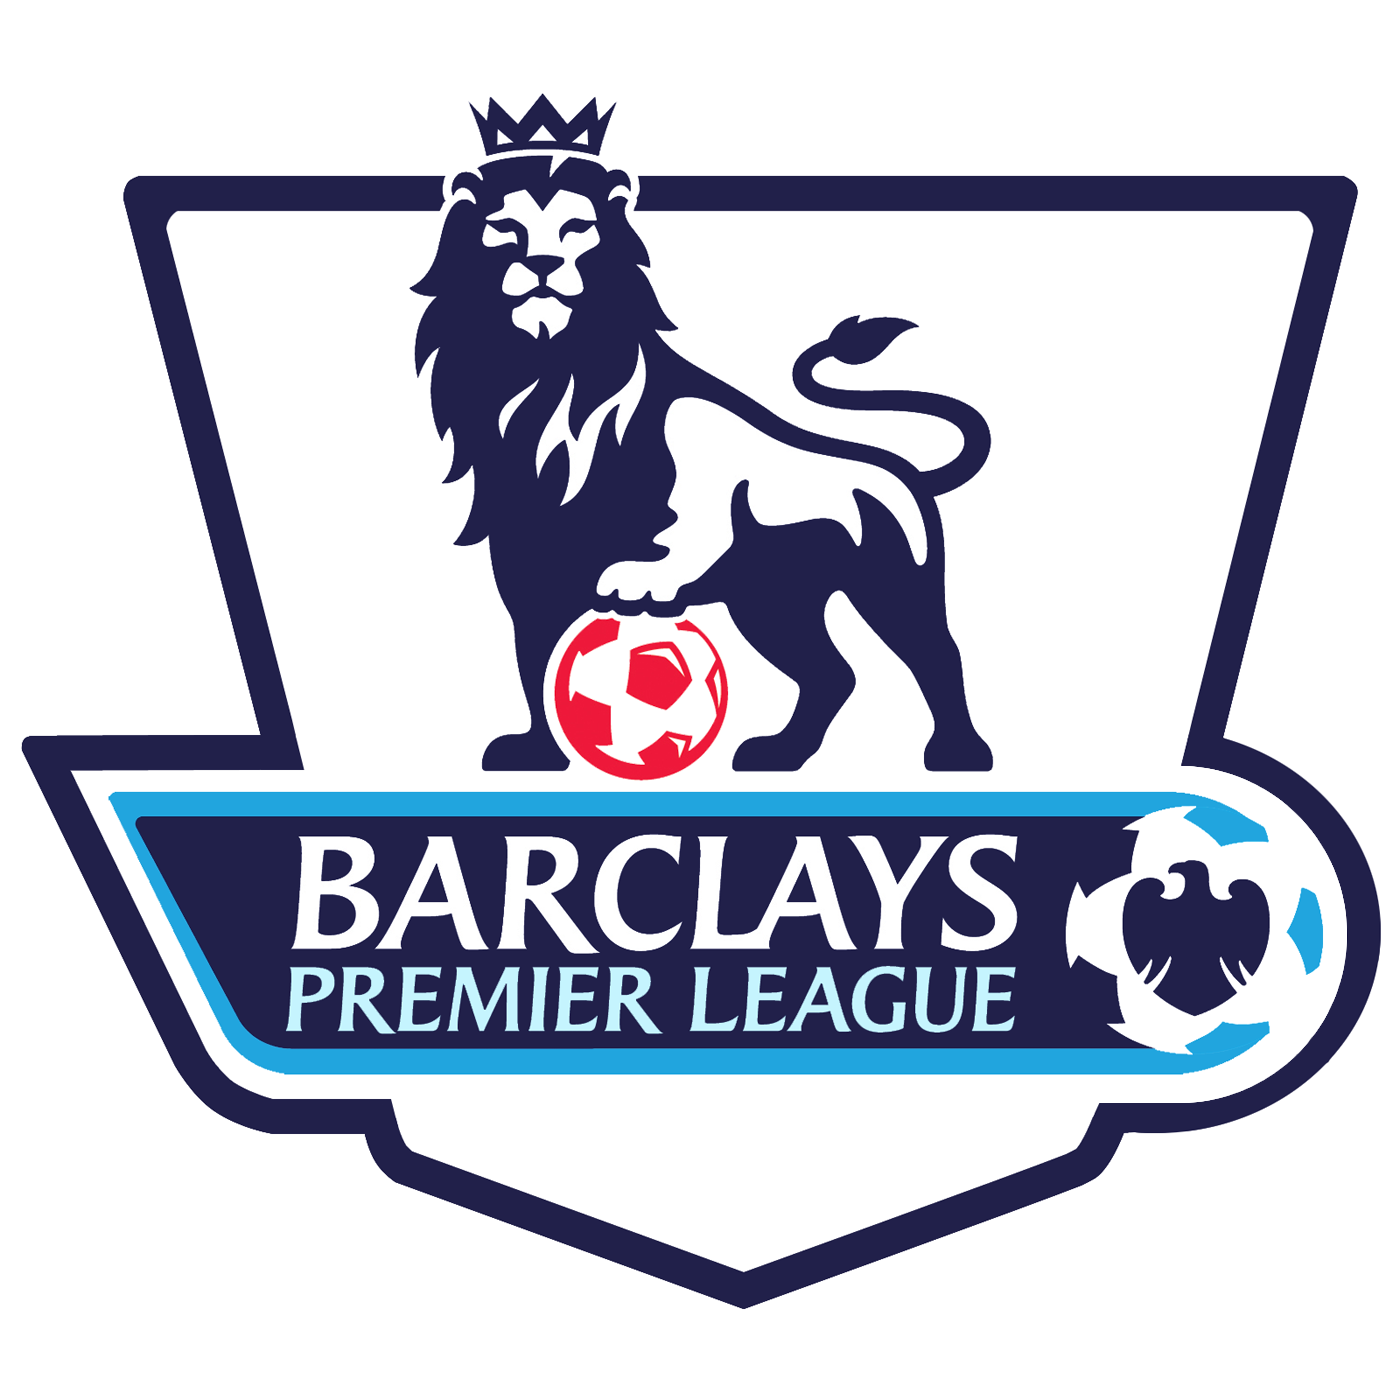 Epl English Premier League Considered By Some To Be The Best League In The World Hmmmm Premier League Logo Barclay Premier League Premier League